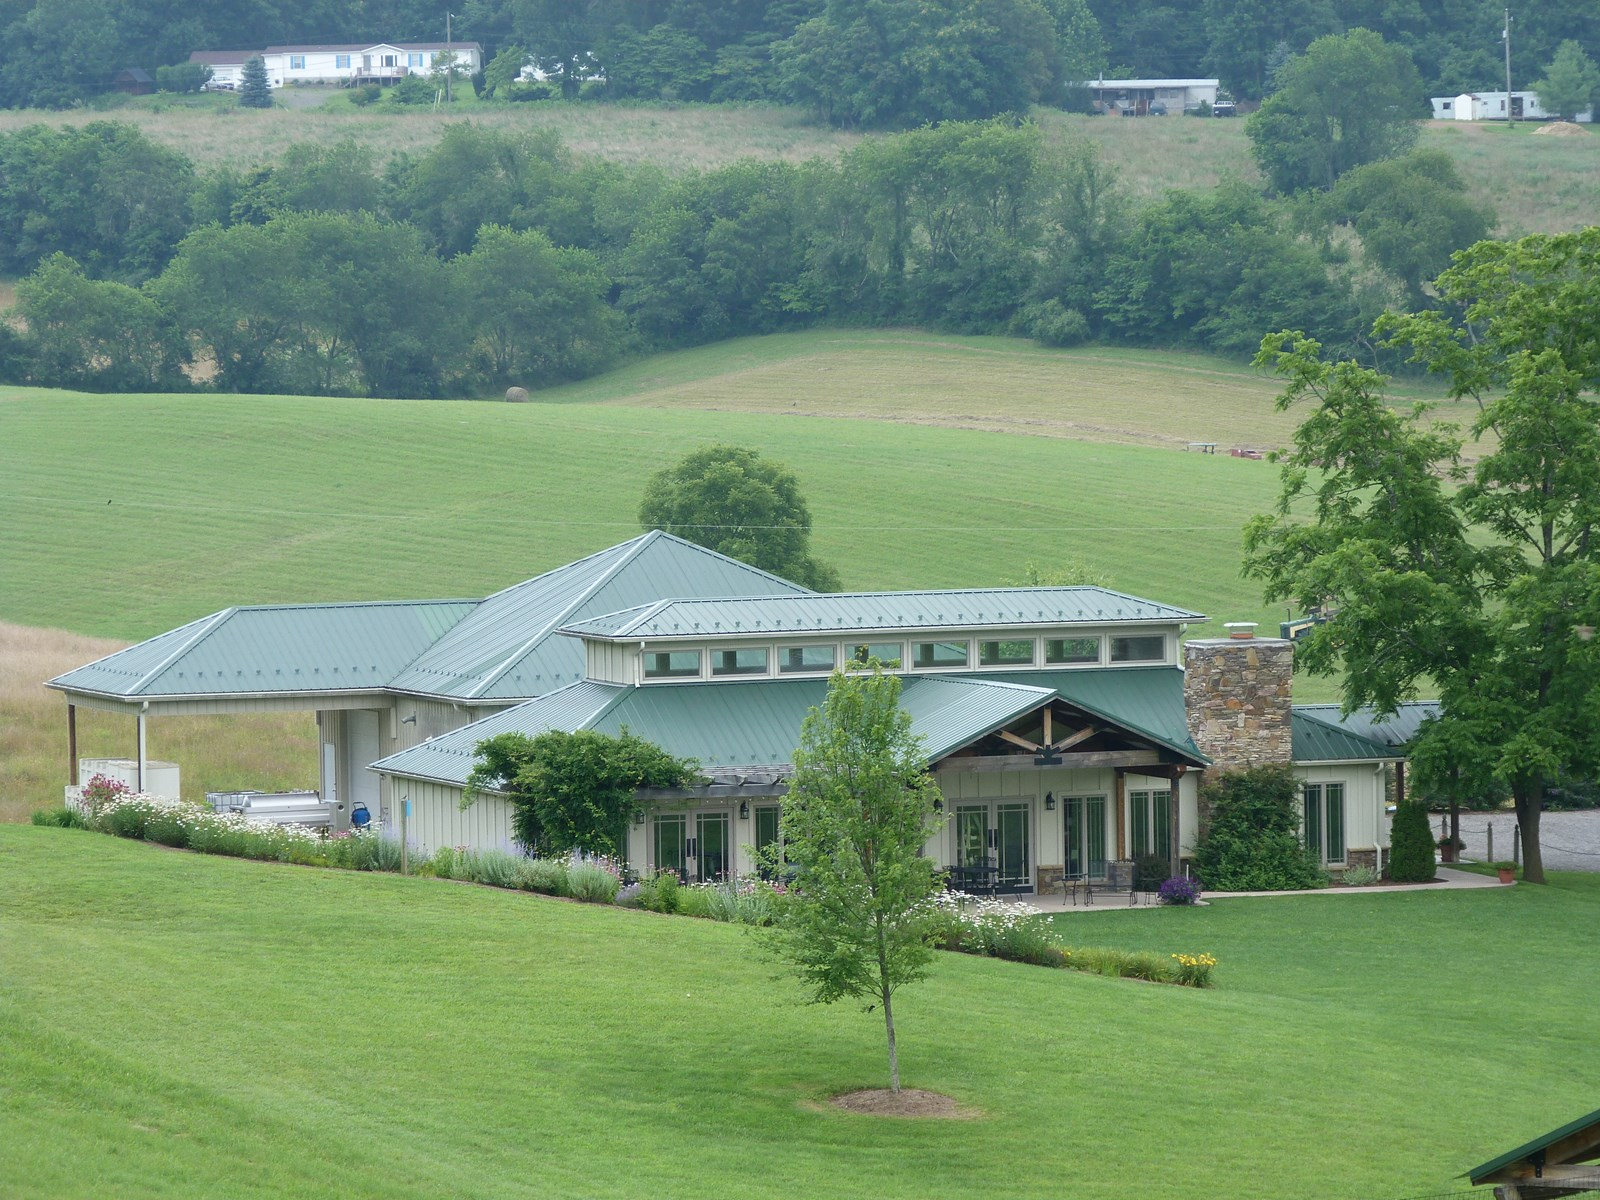 Blue Ridge Mountains, VA- West Wind Farm and Winery for sale